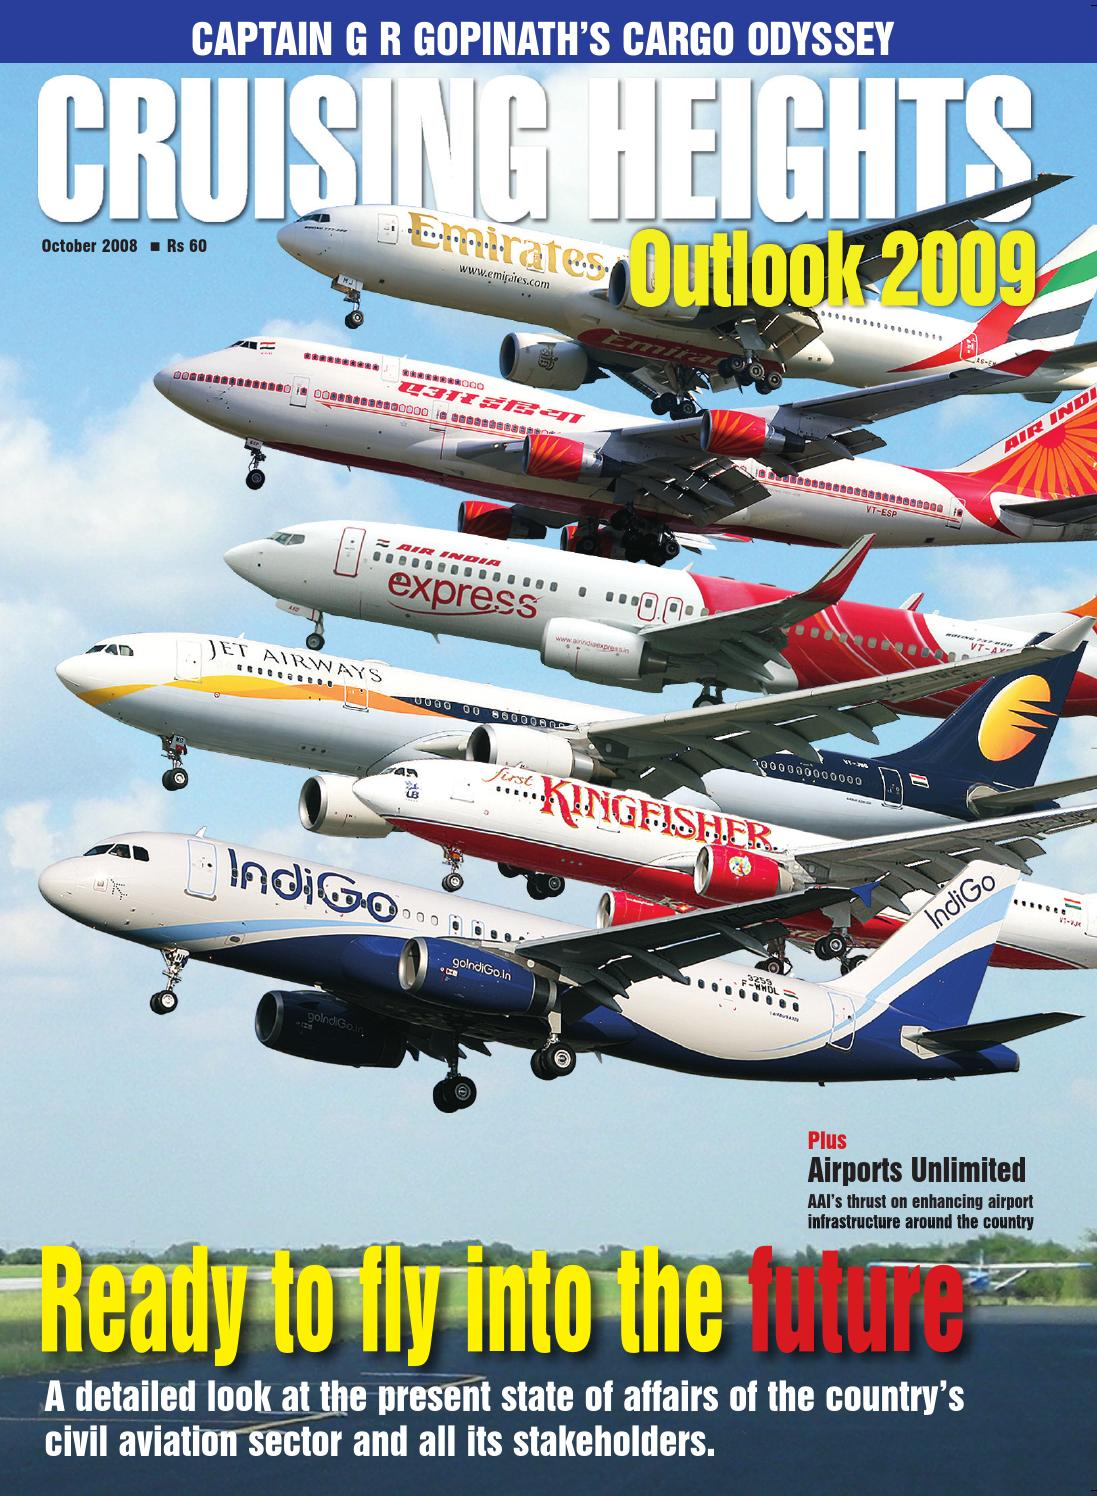 Ch october 2008 by Newsline - issuu